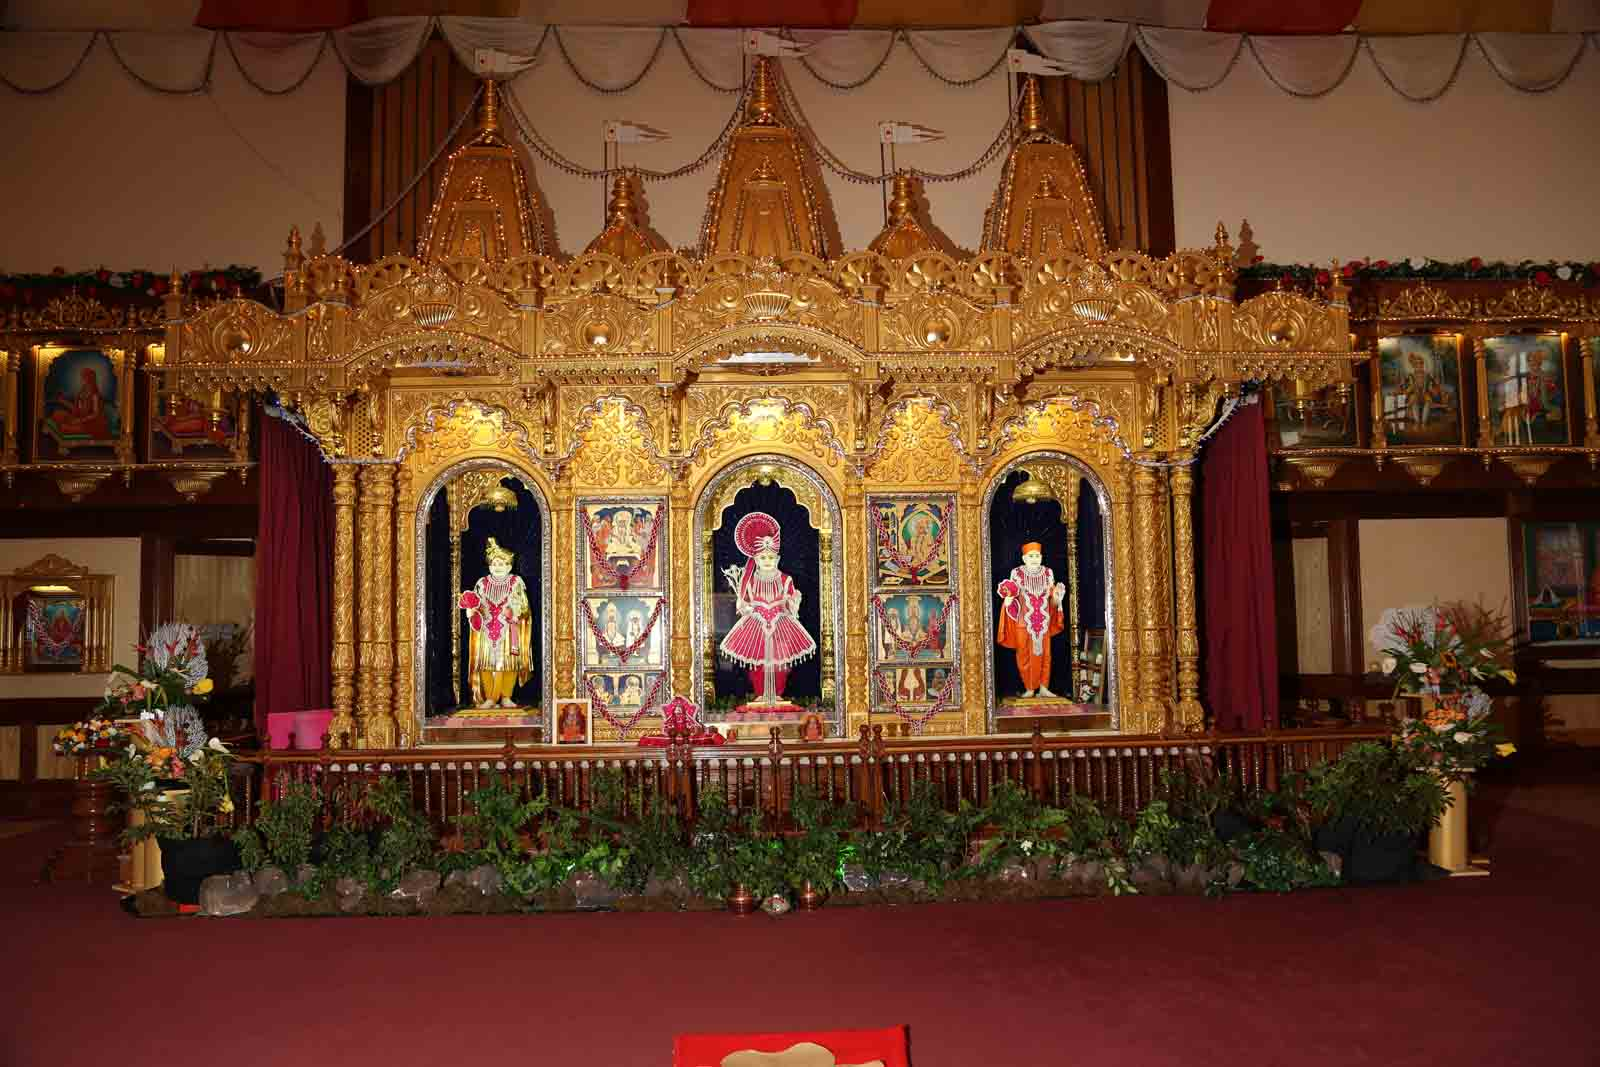 Divine darshan of Lord Swaminarayan, Jeevanpran Bapashree and Muktajeevan Swamibapa